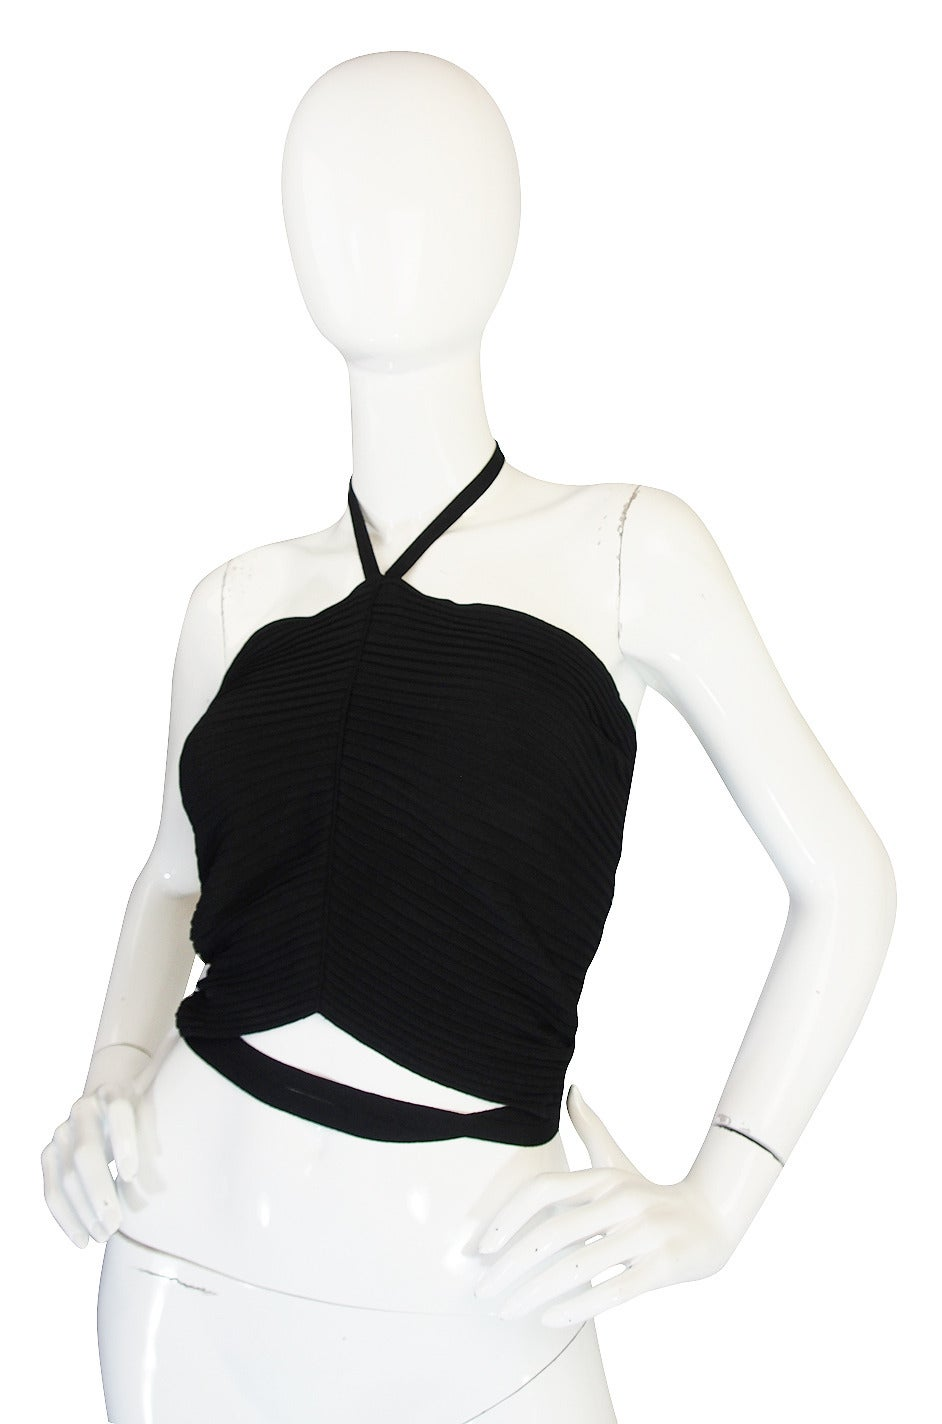 circa 1996 Tom Ford for Gucci Black Halter Knit Top 3